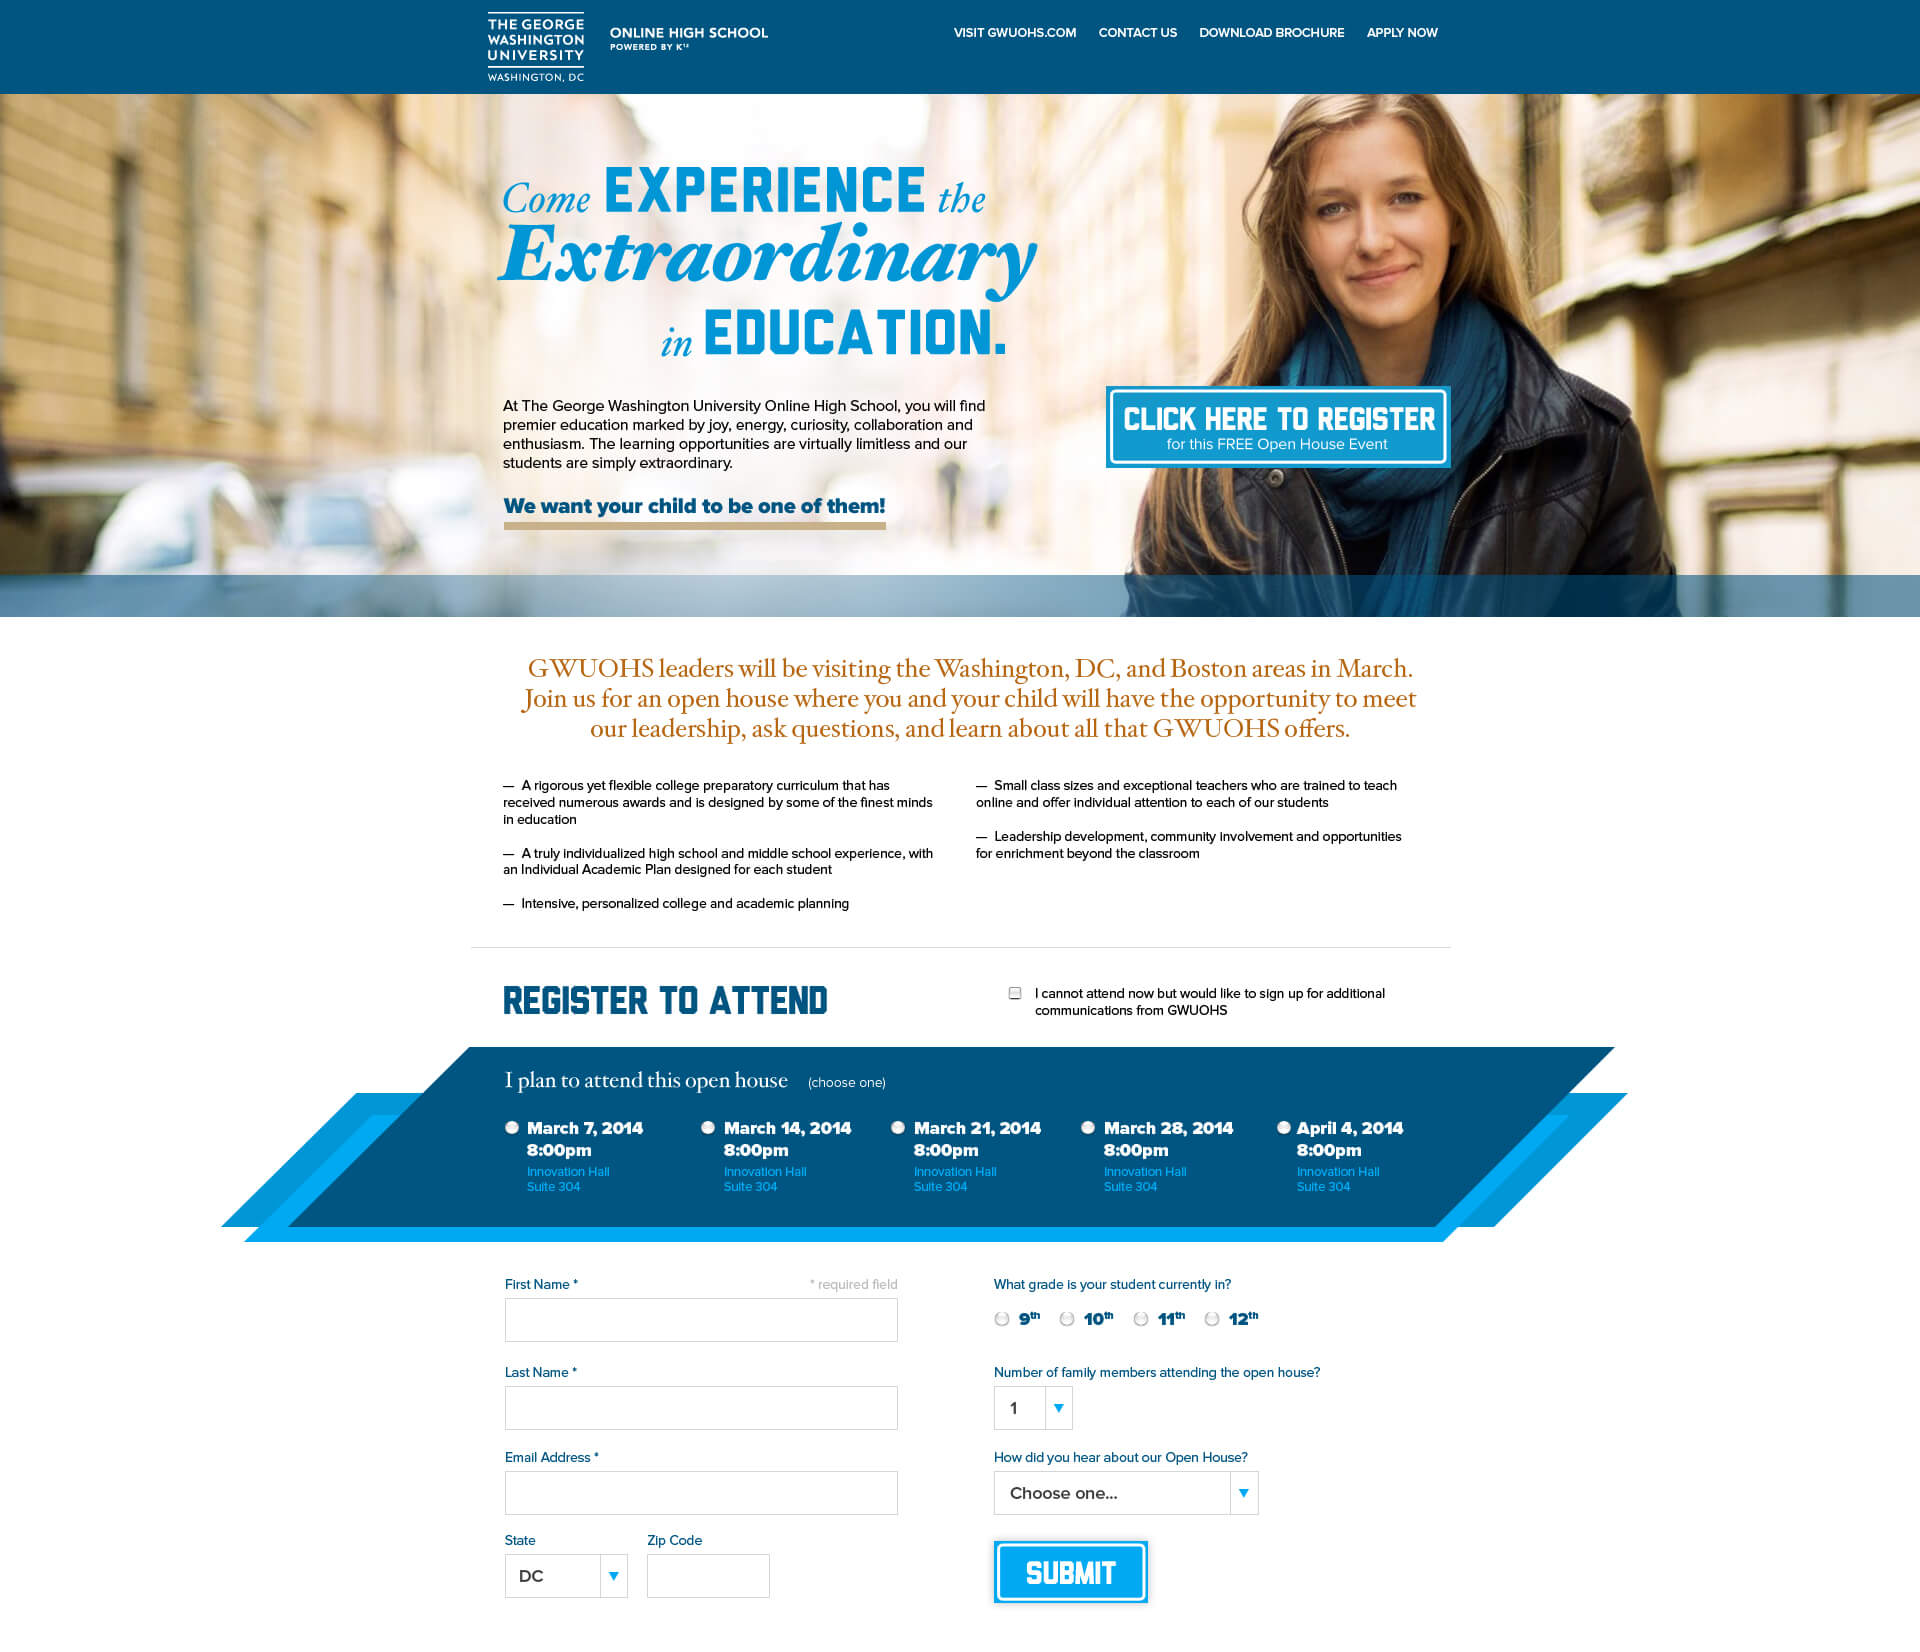 George Washington University Online High School